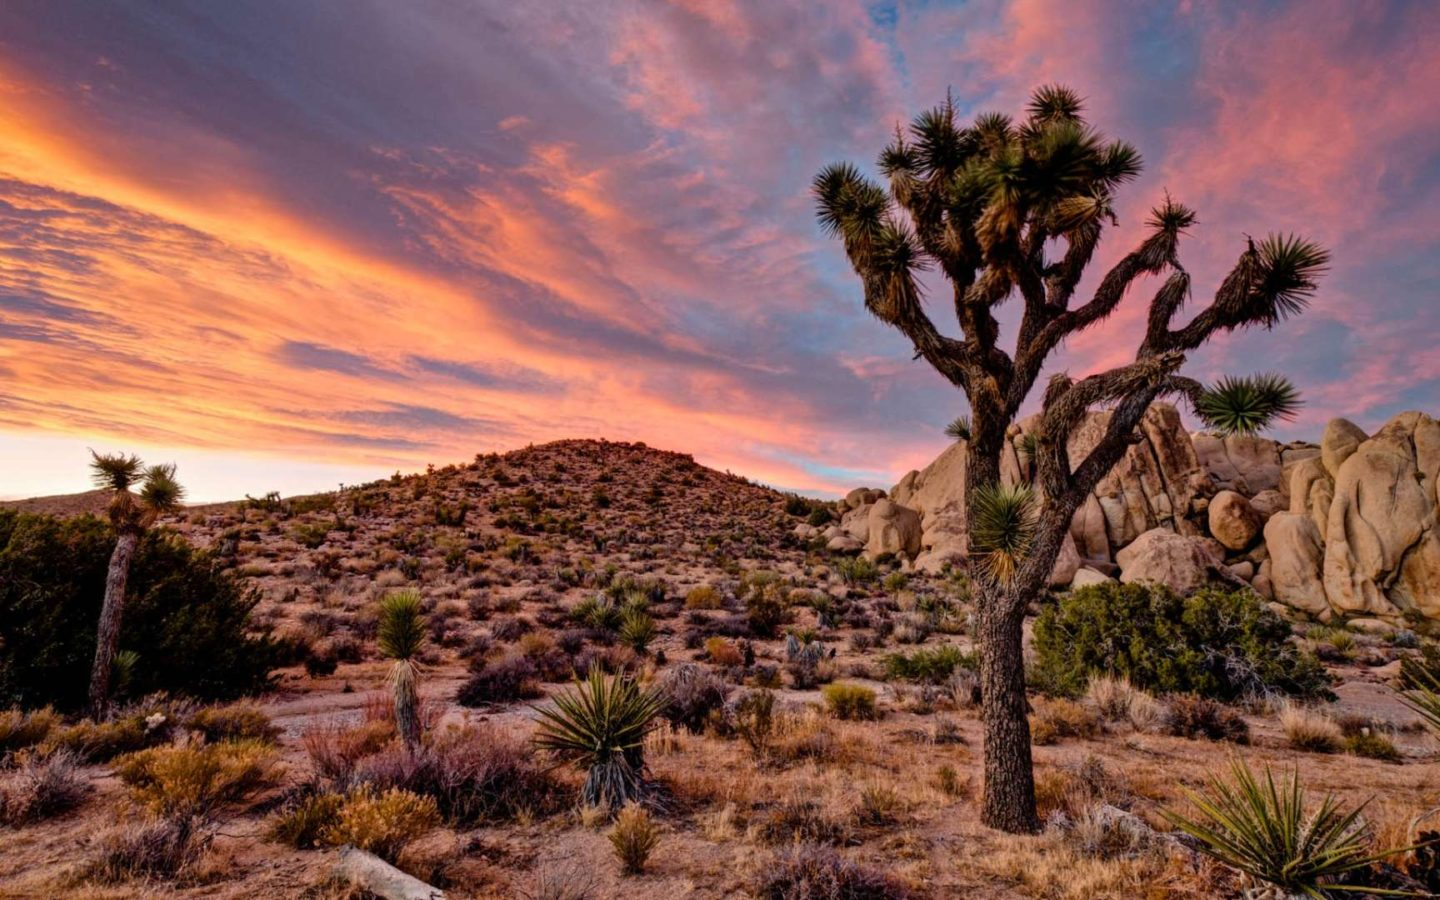 United States Wallpaper Iphone Landscape Wallpaper Hd Joshua Tree National Park In